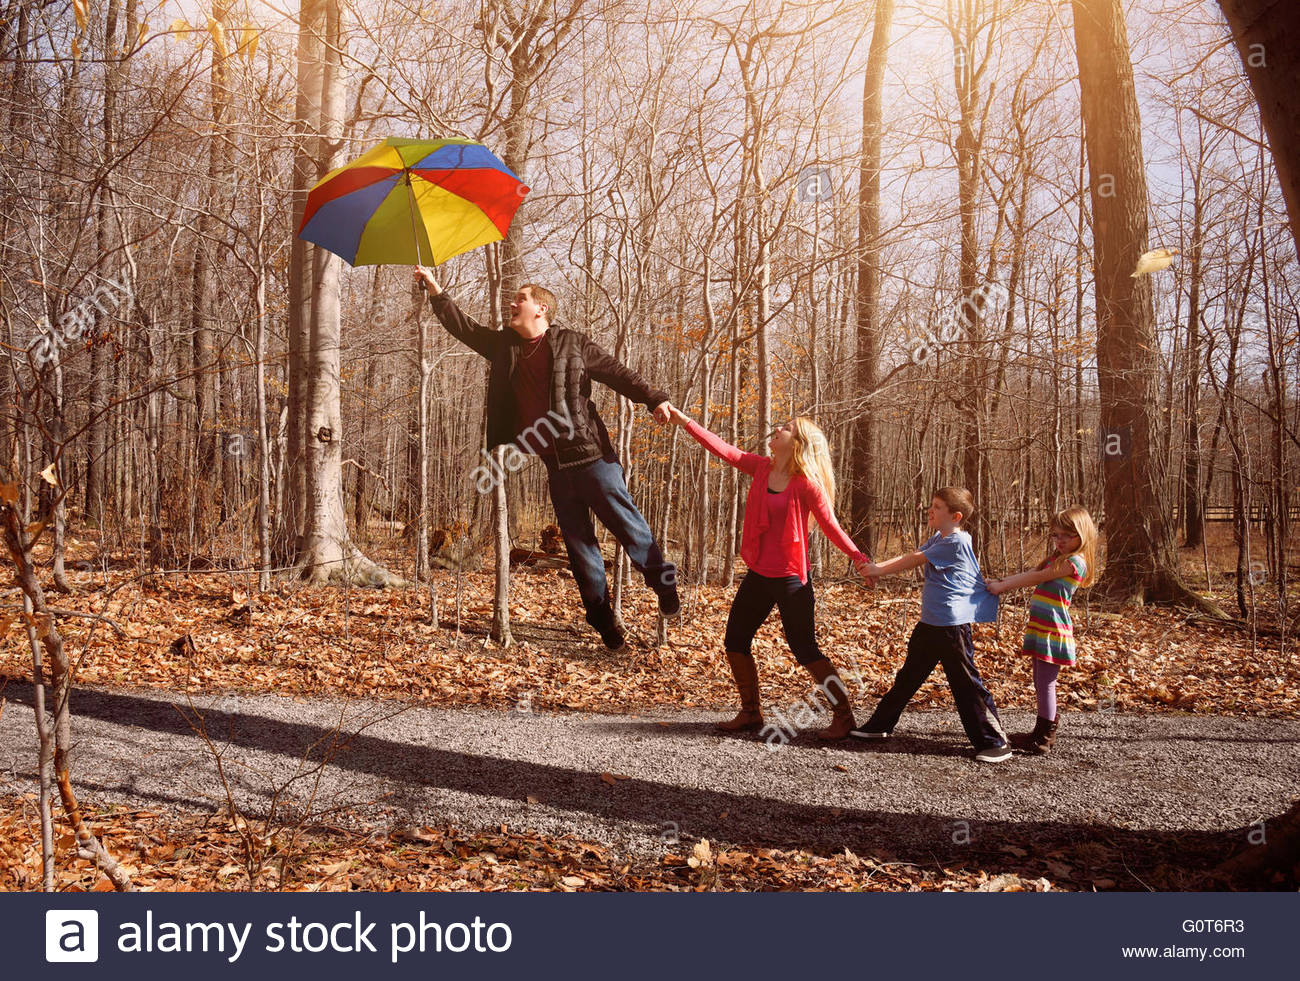 A family is holding hands together and flying up in a rainbow umbrella outside for a imagination, support or happiness - Stock Image